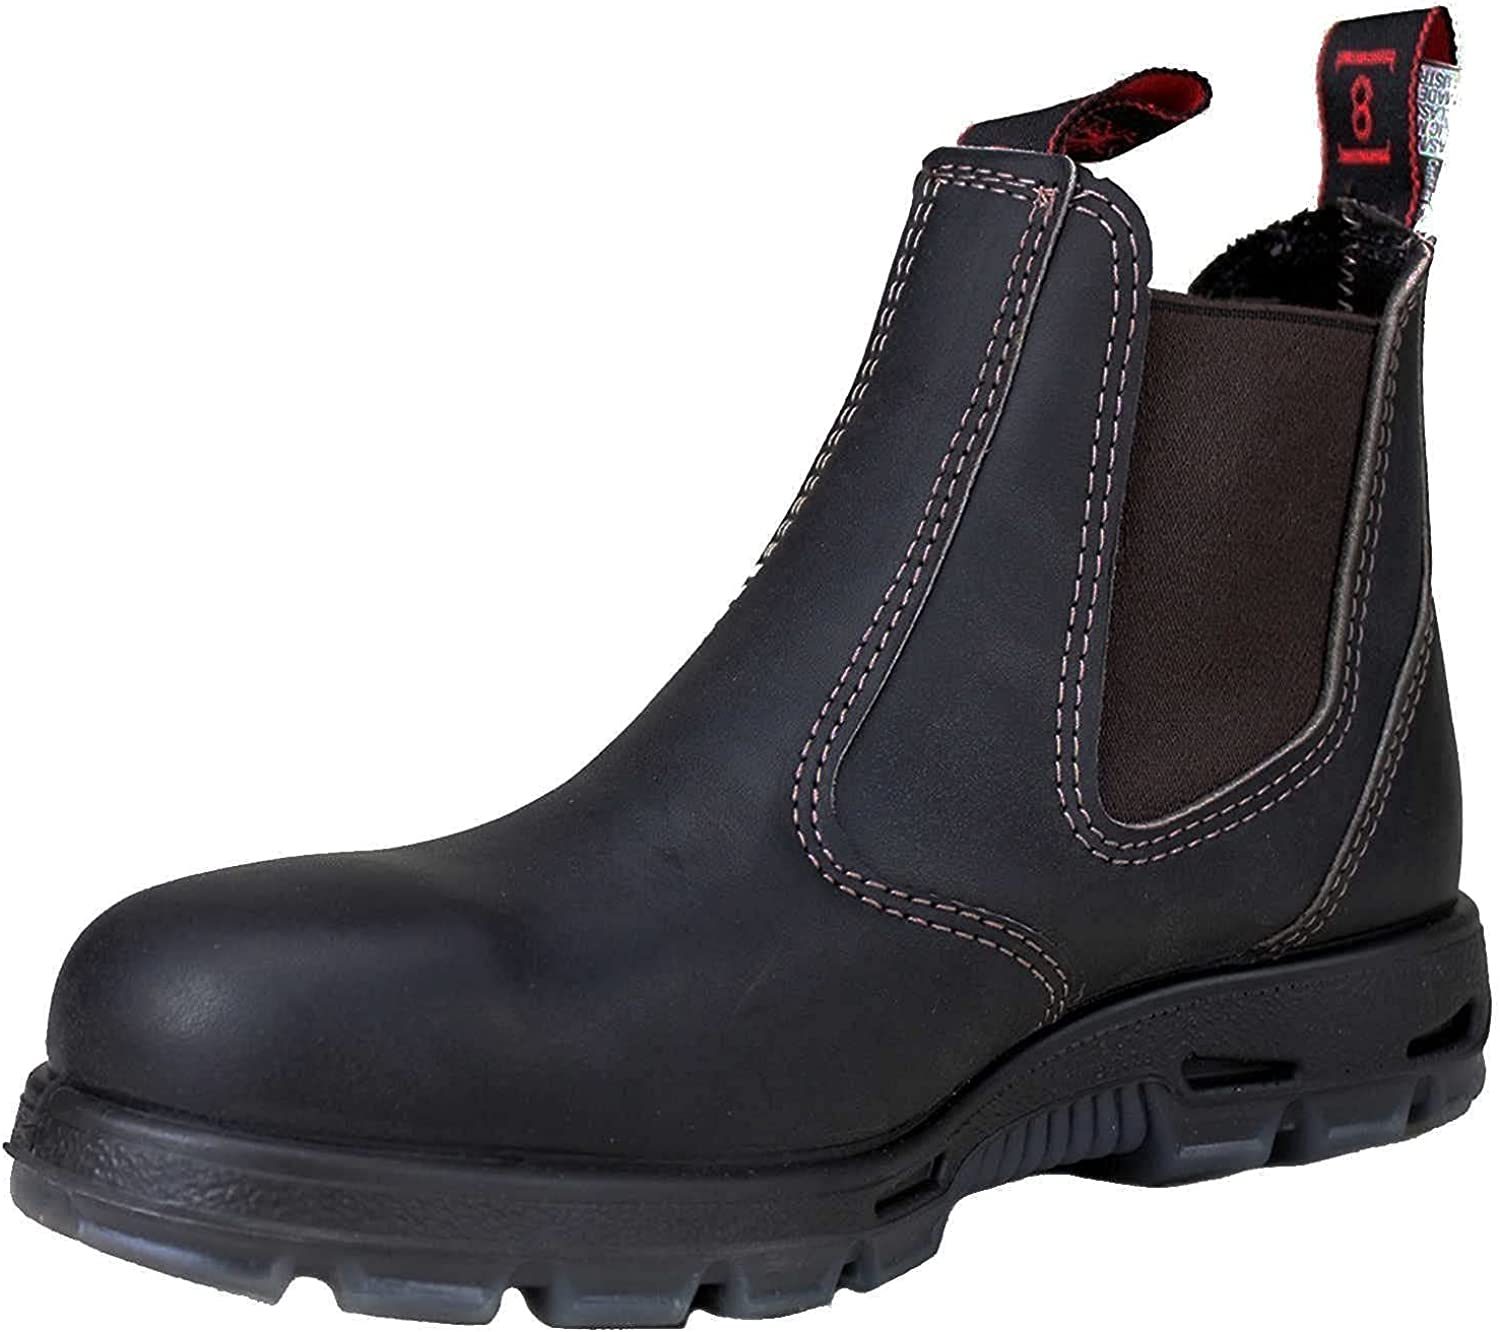   Redback Men's Safety Bobcat USBOK DARK BROWN Elastic Sided Steel Toe Leather Work Boot   Fire & Safety Boots